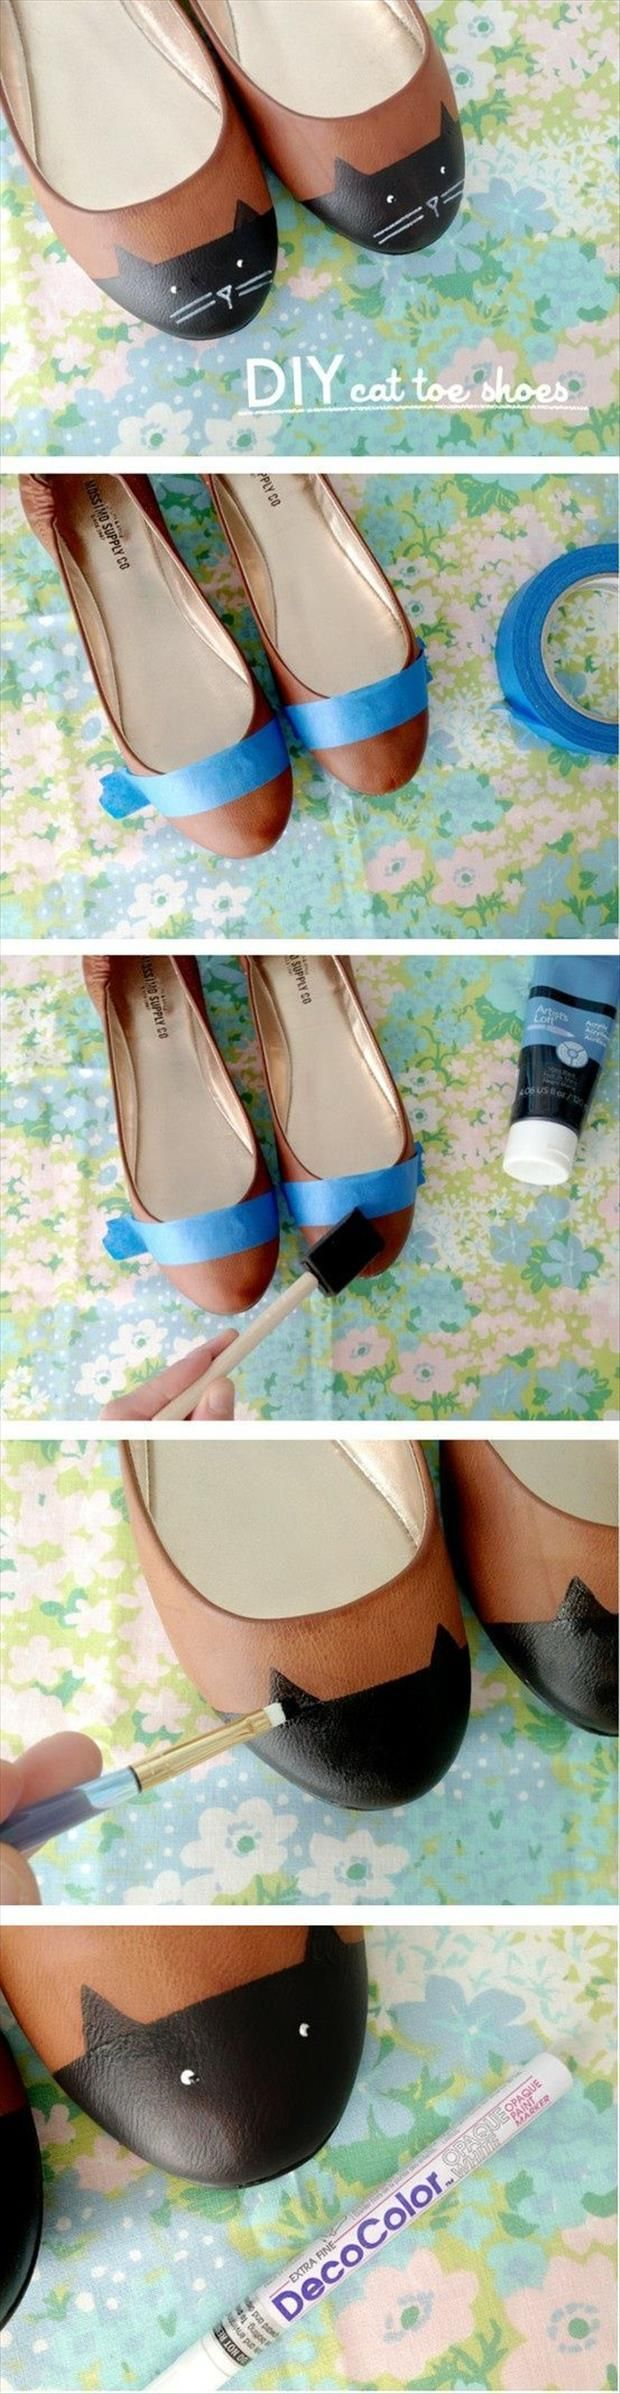 VIsit us at: www.dontpayfull.com/blog Cool DIY Idea/ Easy DIY Project/ Best Tutorial/ Best Crafts/ Crafts and DIY